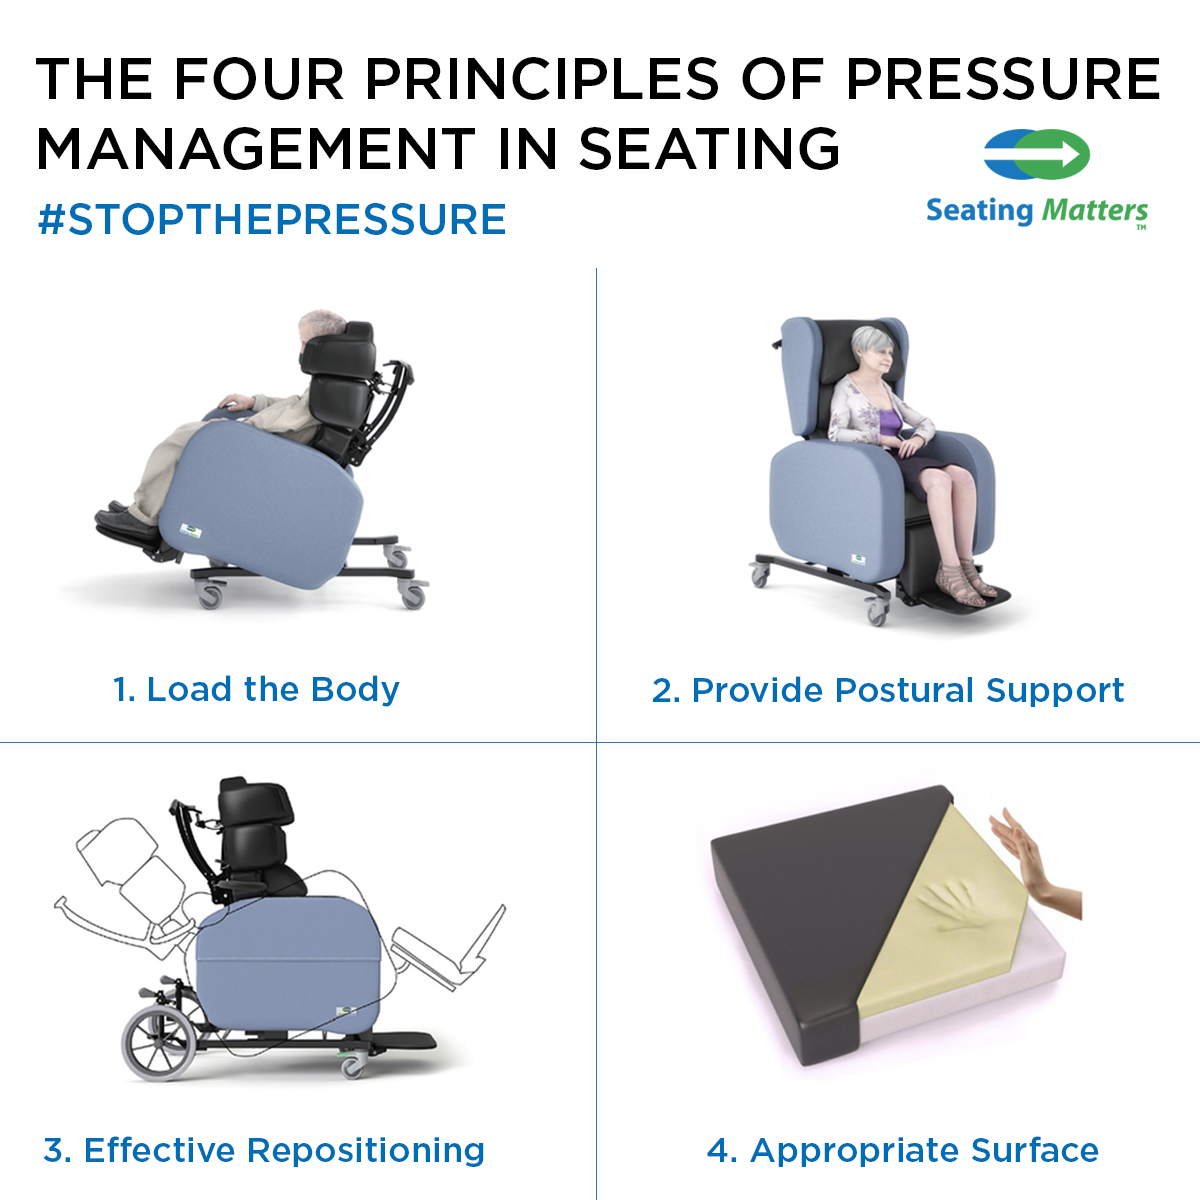 The Four Principles of Pressure Management in Seating